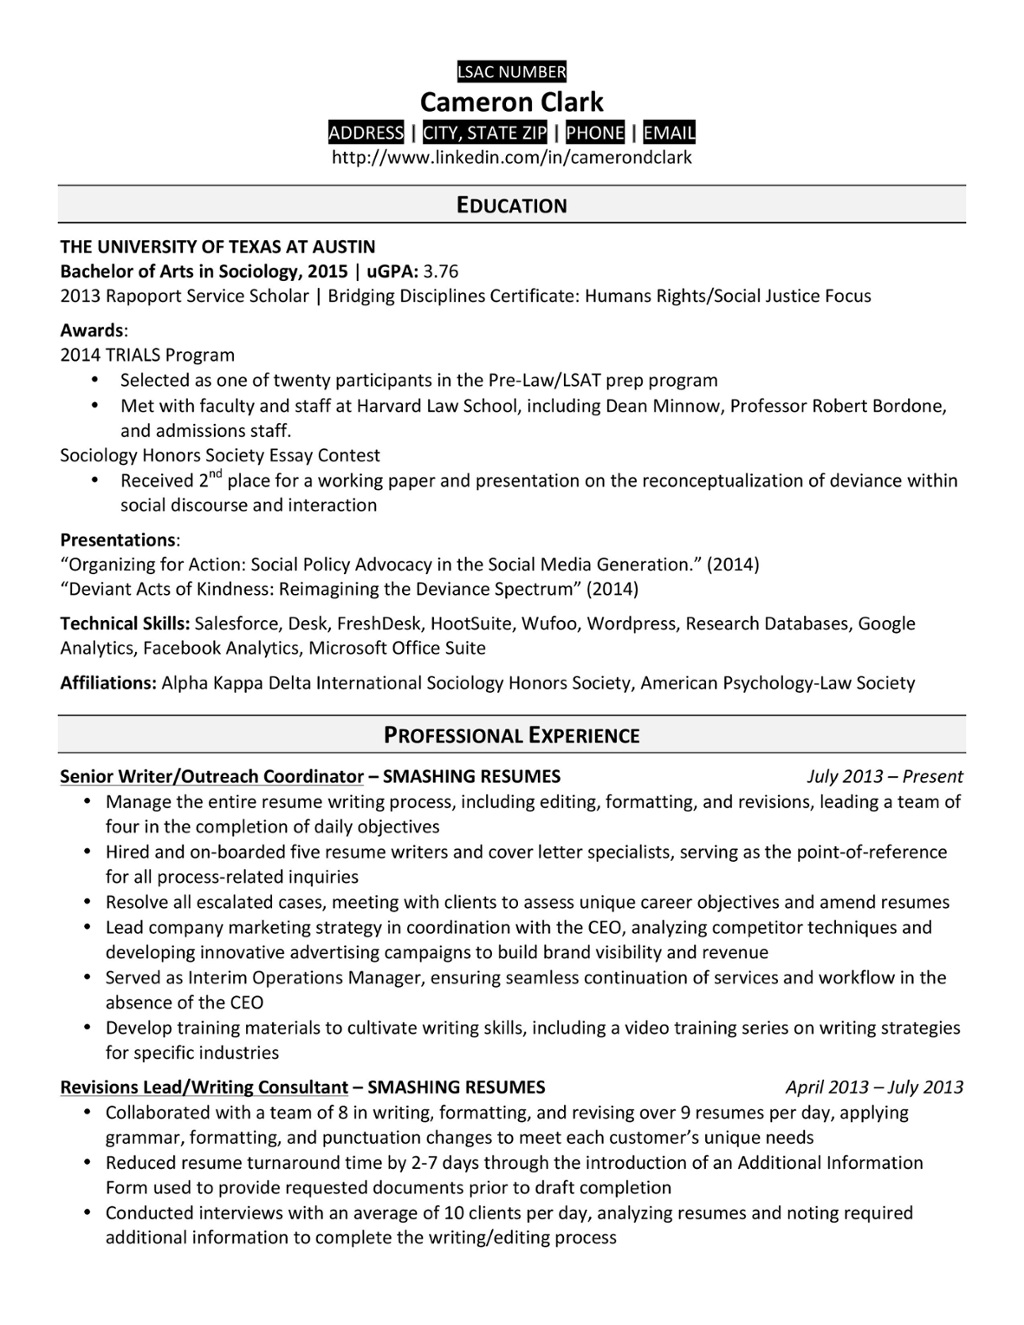 Law school resume example